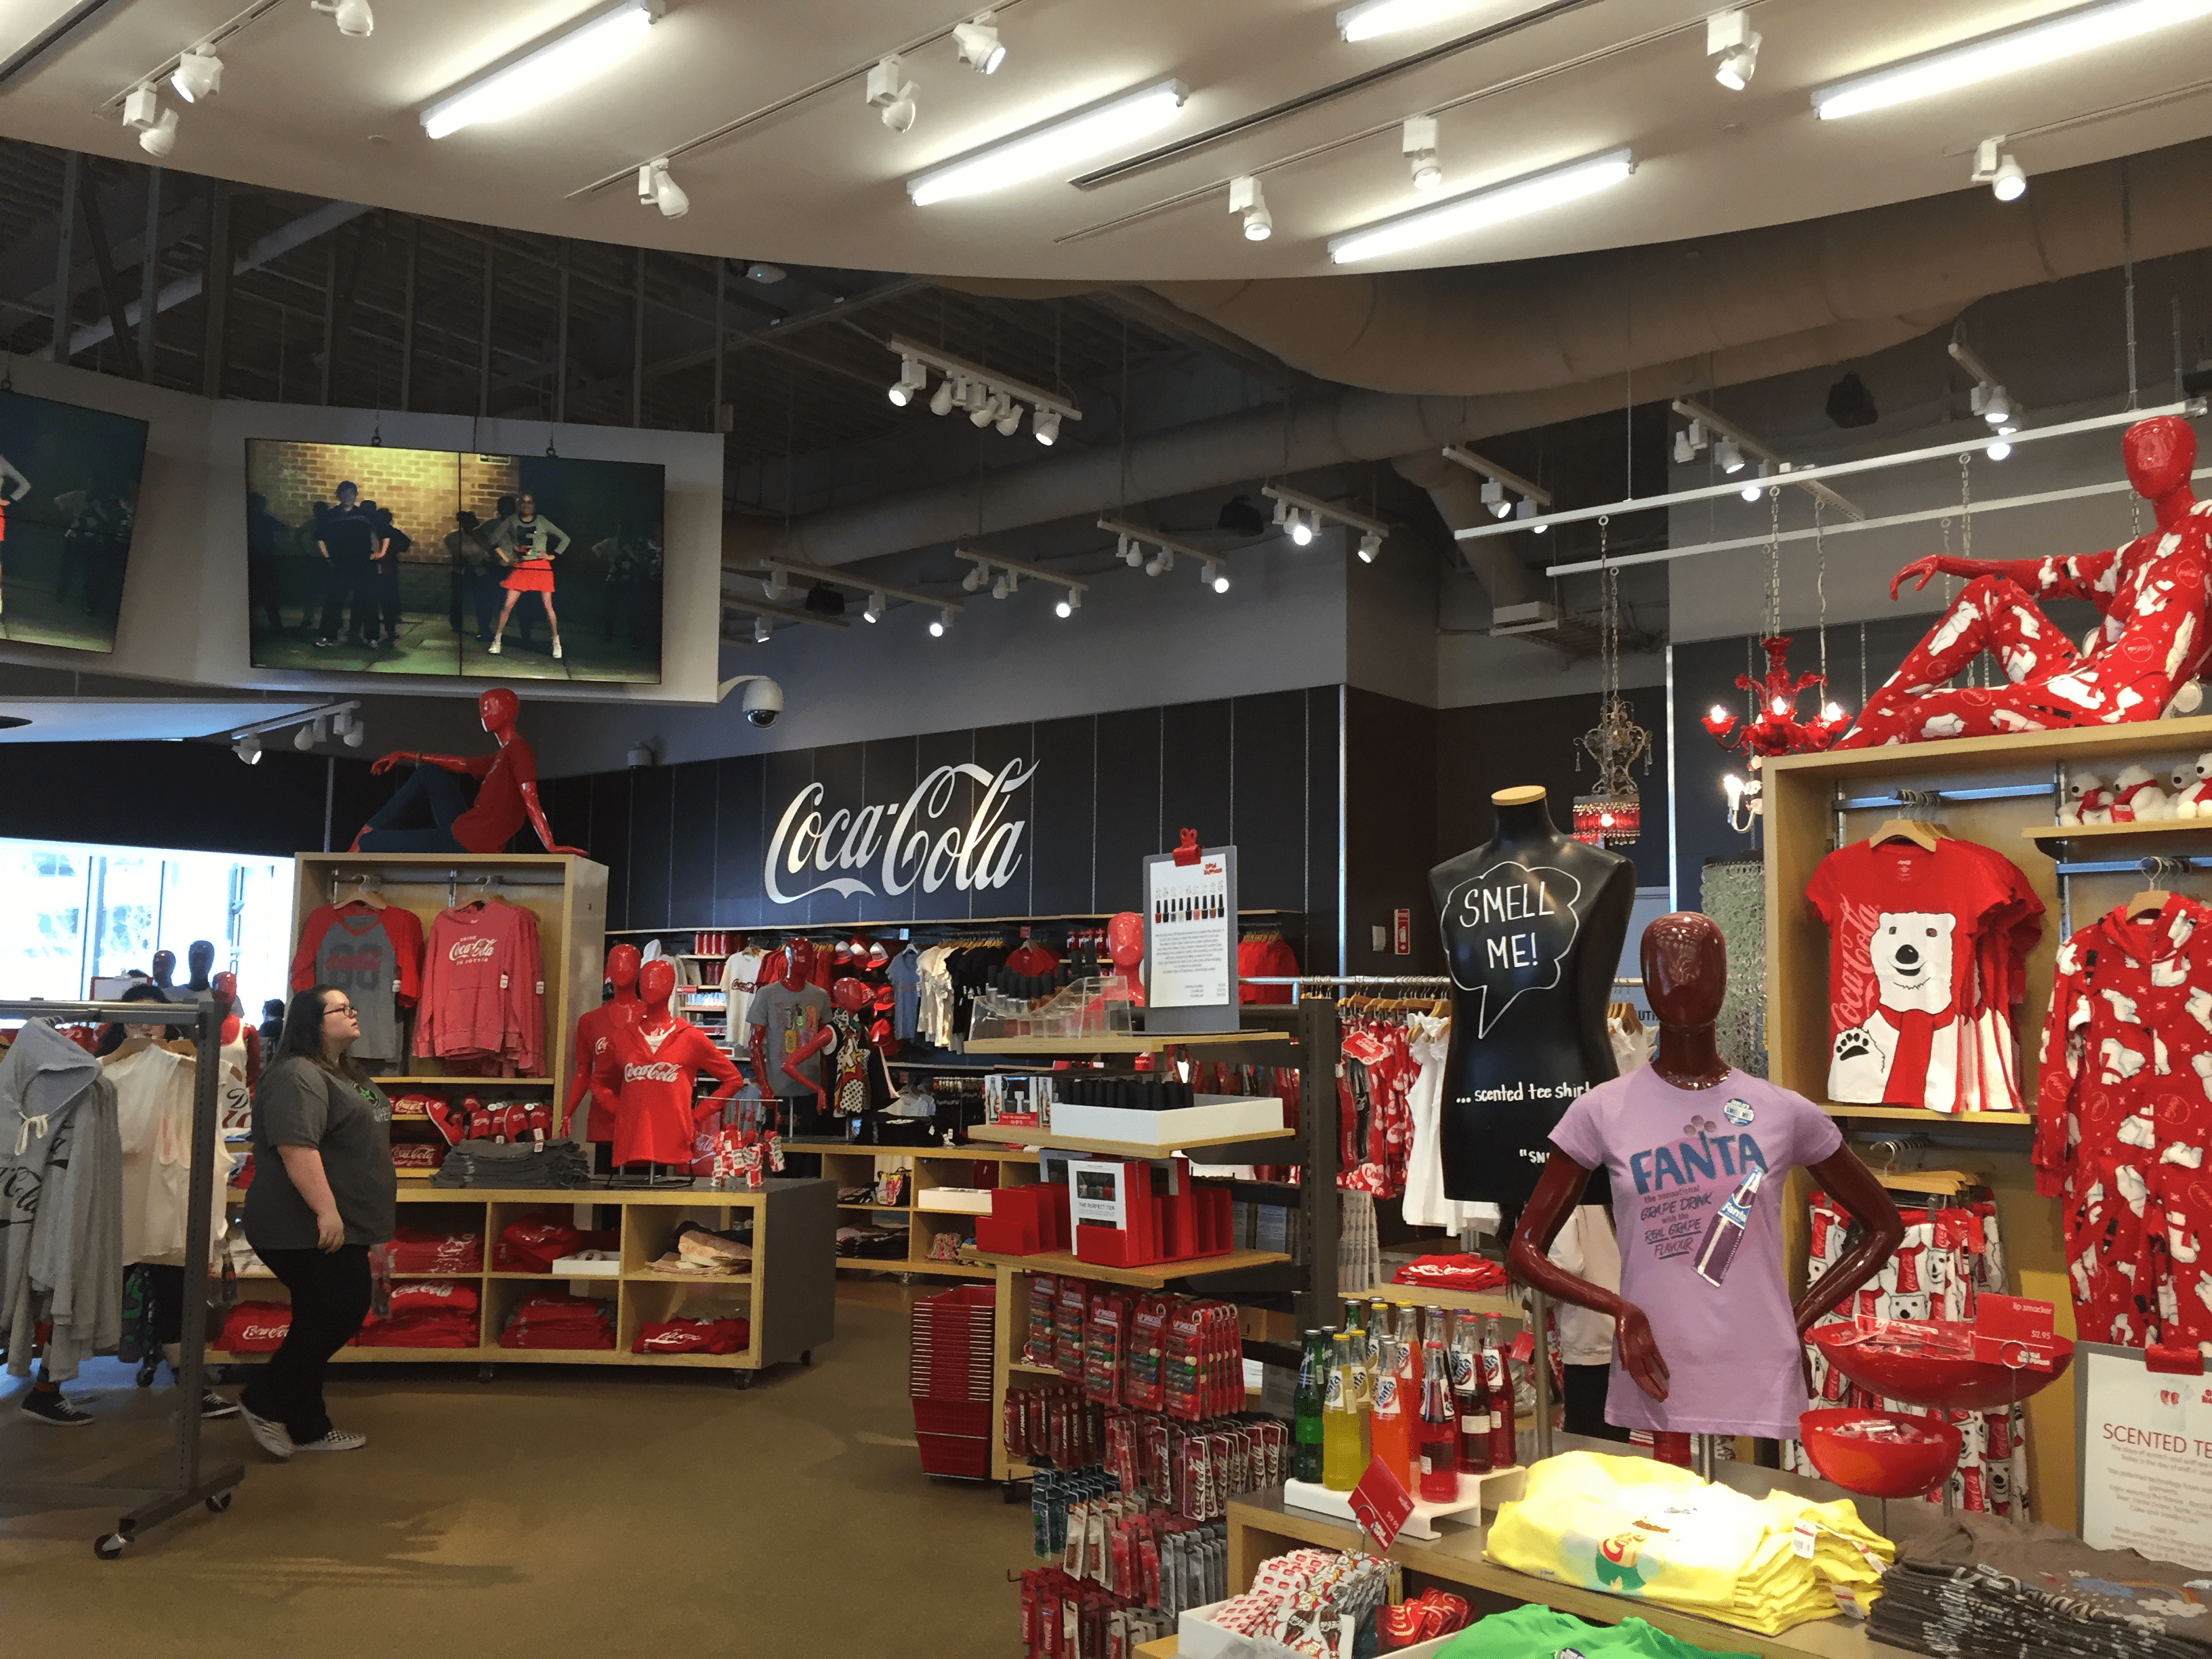 An image from the Coca-Cola store including merchandising like sweatshirts, t-shirts, pajamas, bottles of soda, and chapstick.